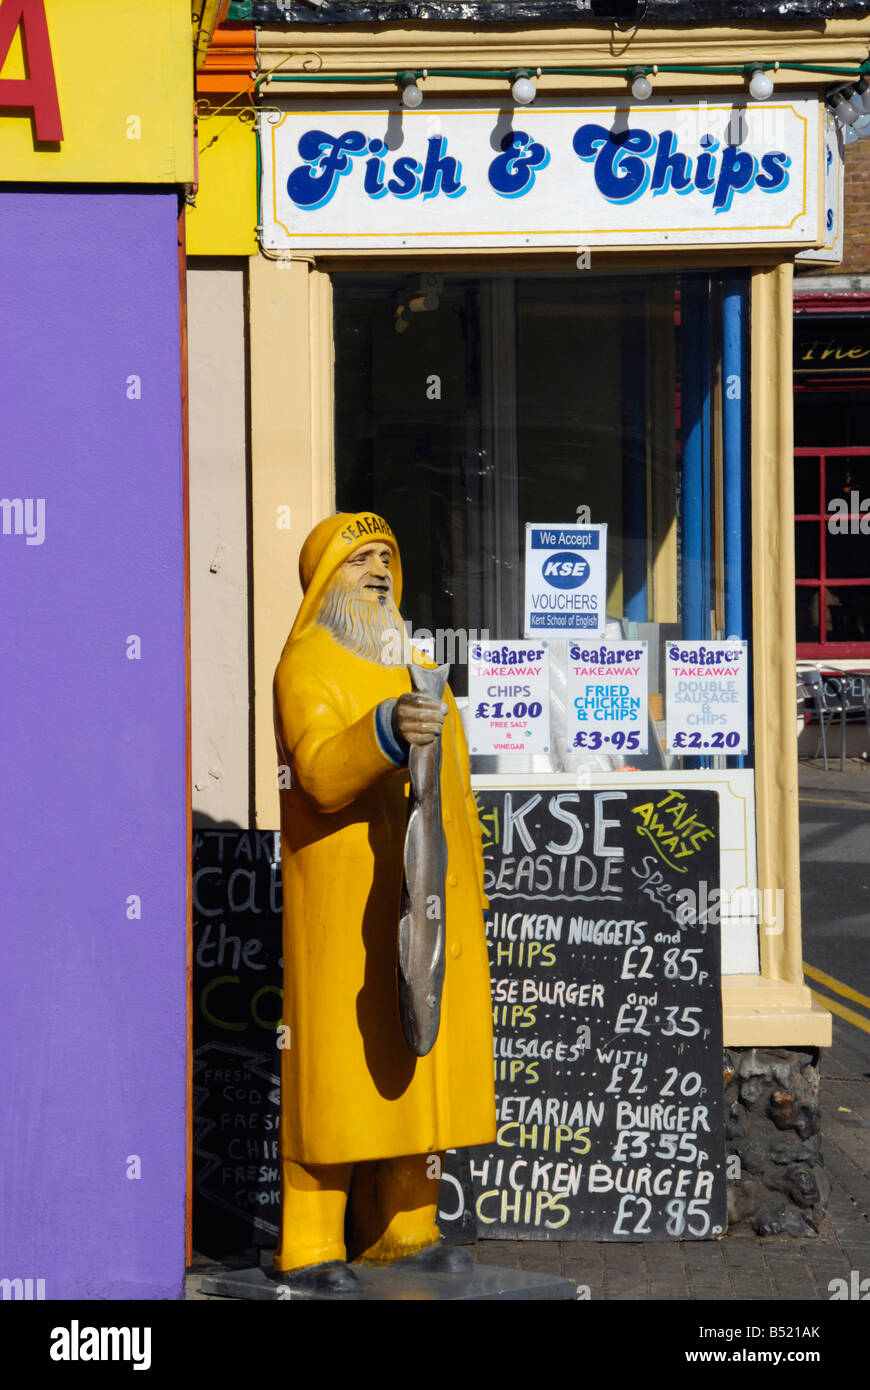 Fish and chip shop in Broadstairs Kent England - Stock Image